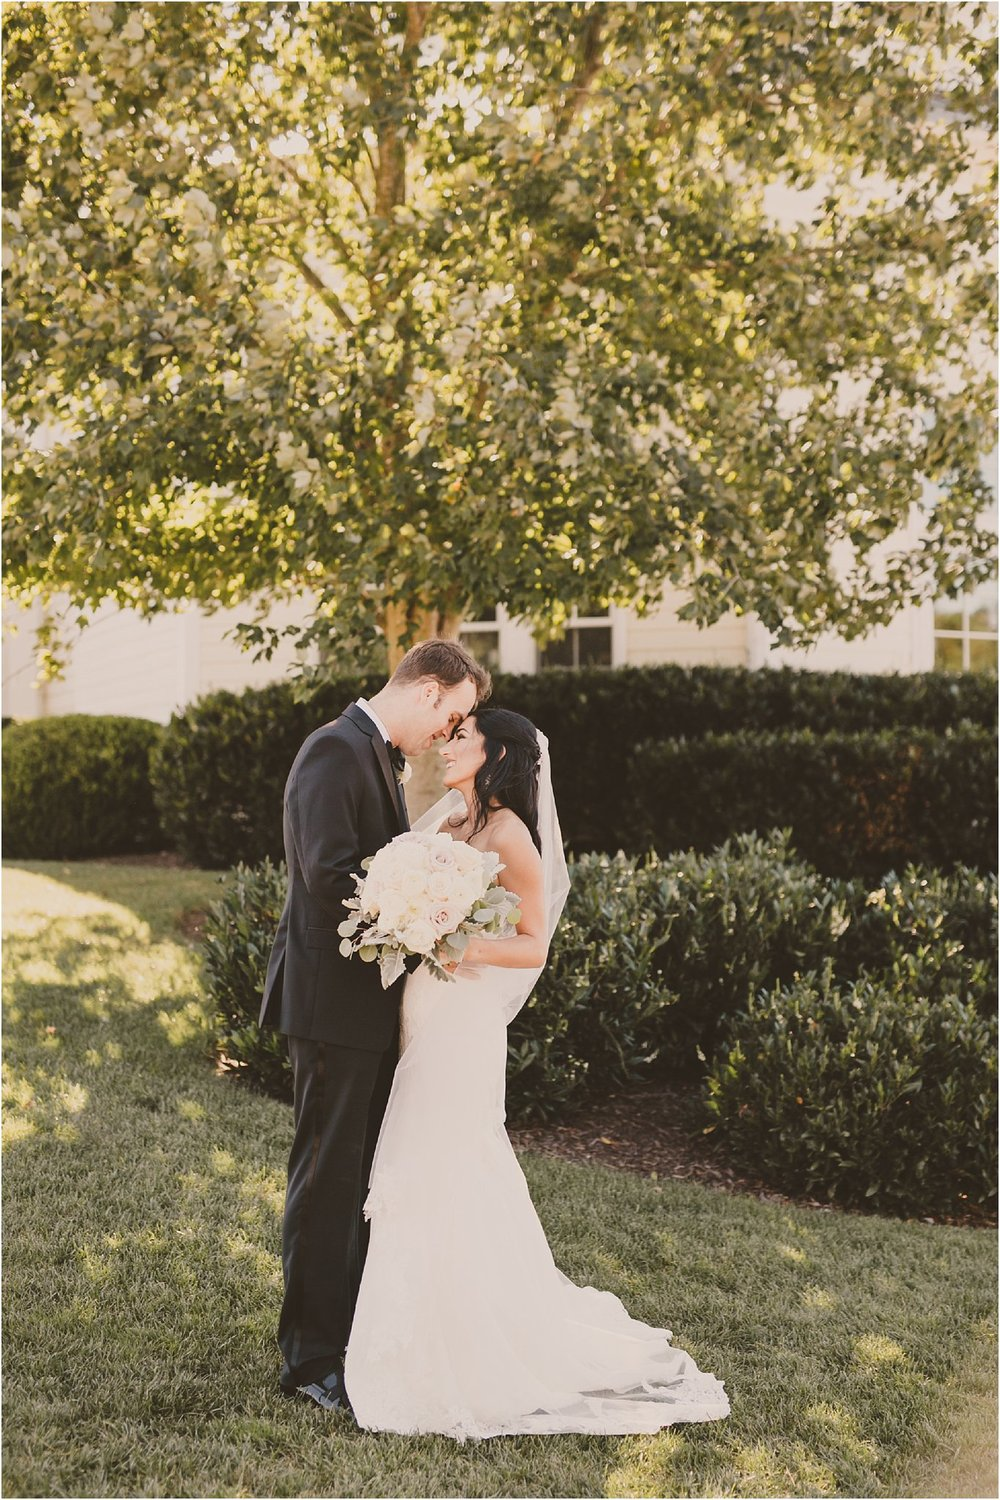 PattengalePhotography_BohoWedding_RichmondVirginia_Photographer_SevenSprings_Manor_Estate_Wedding_Mariam&Jay_Elegant_Fall_Bohemian_blush_gold_persian_glam_glamorous__0038.jpg